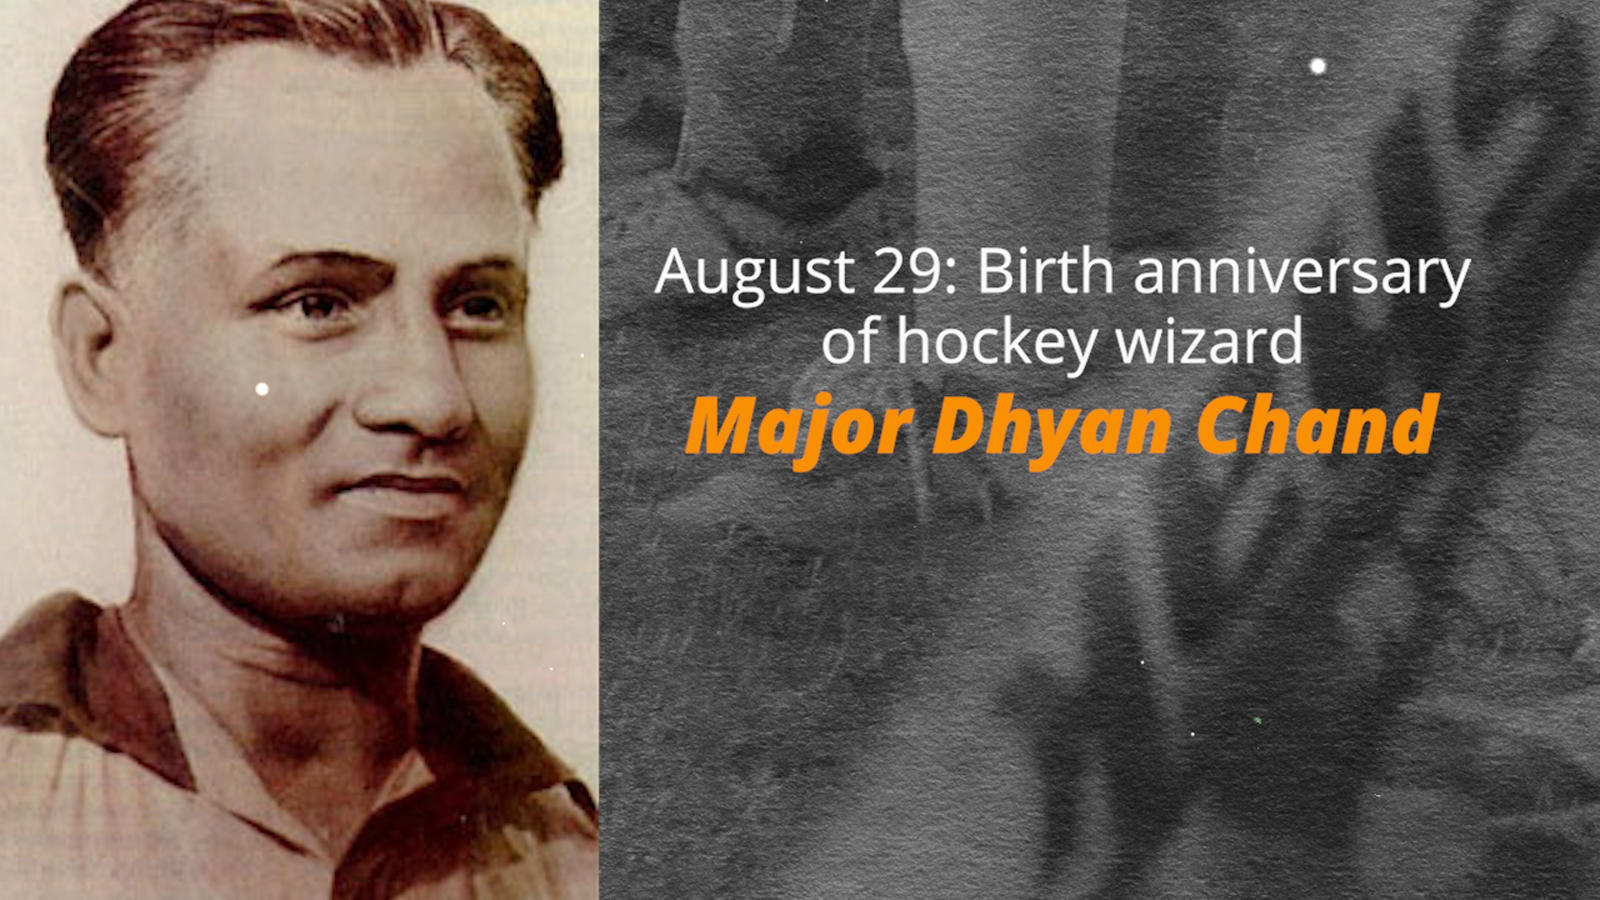 august-29-birth-anniversary-of-hockey-wizard-major-dhyan-chand